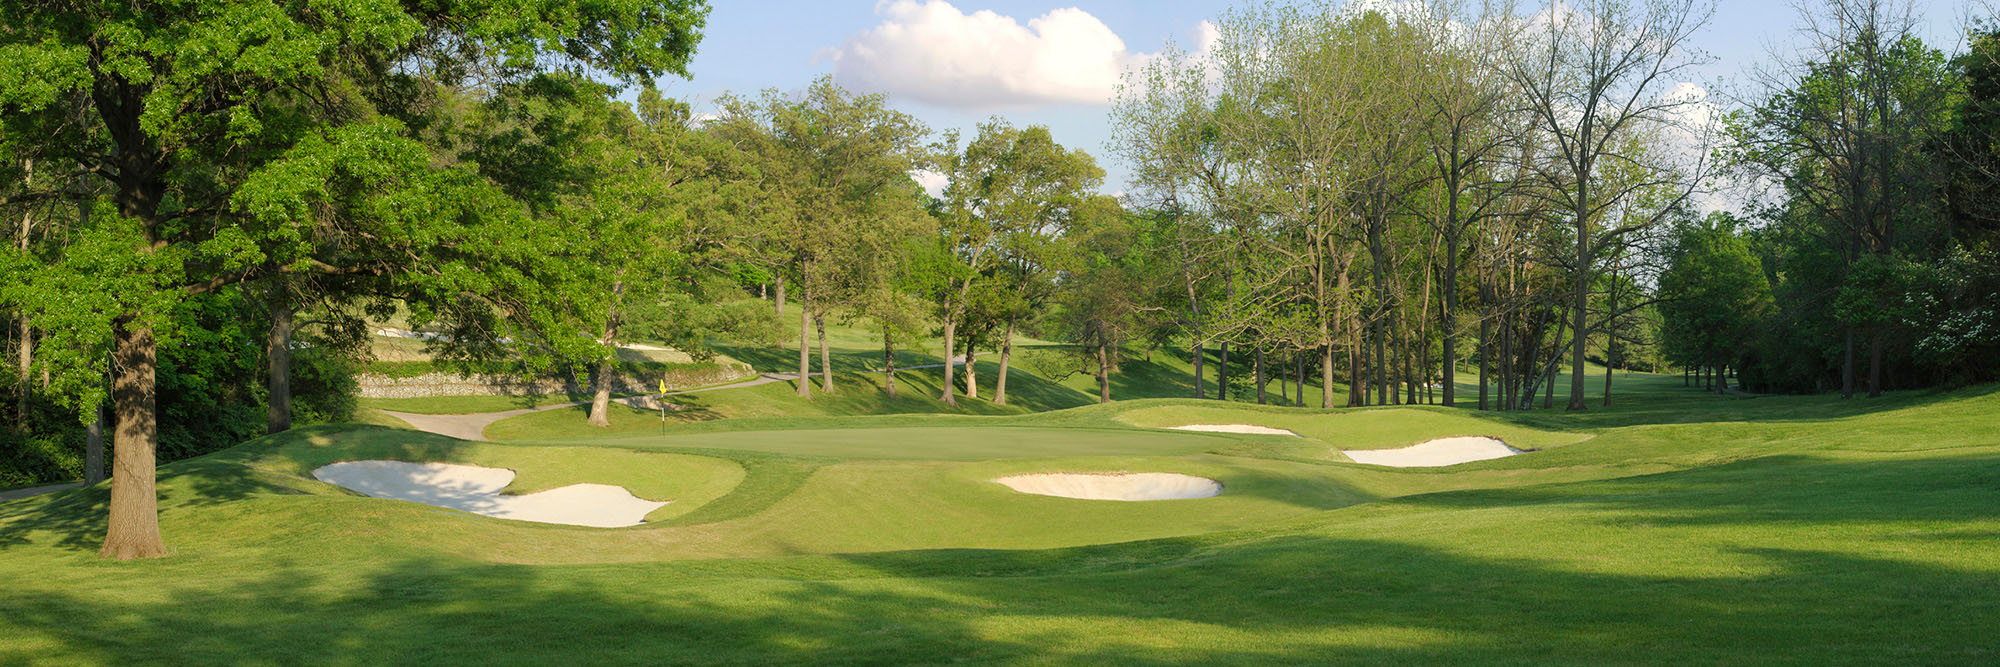 Golf Course Image - Forest Hills Country Club No. 16